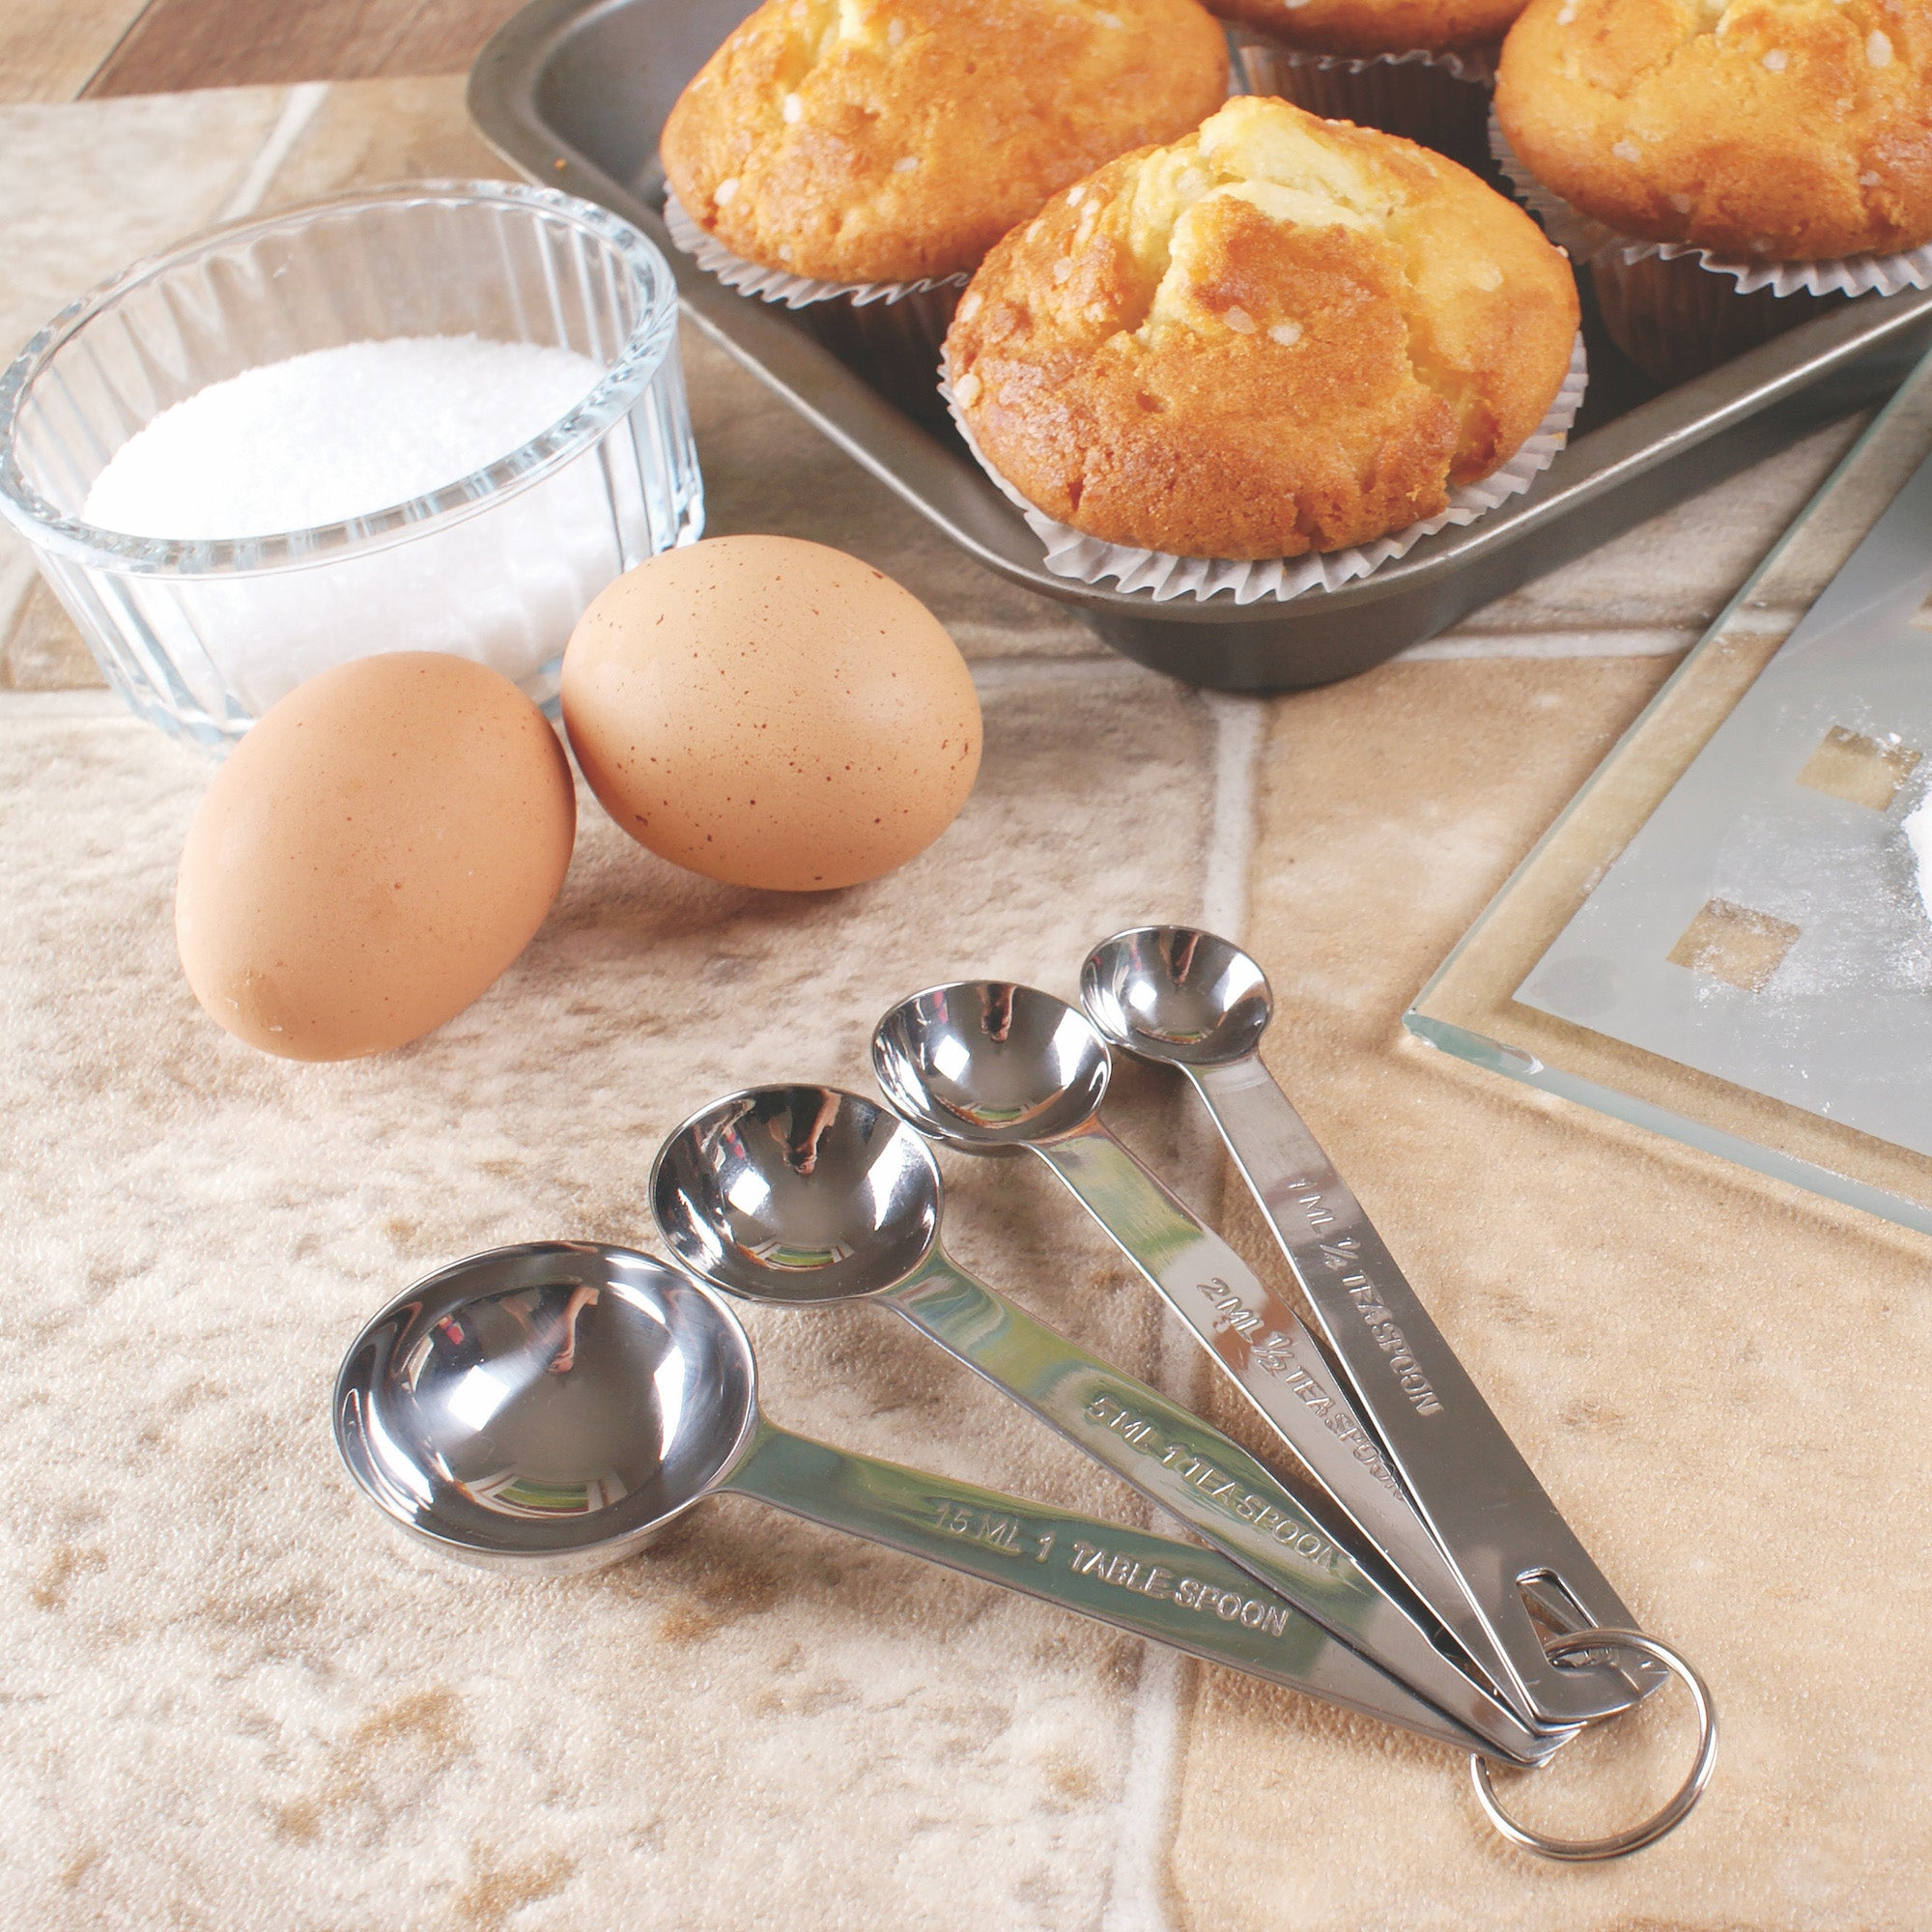 Chef's Stainless Steel Measuring Spoons - Set of 4